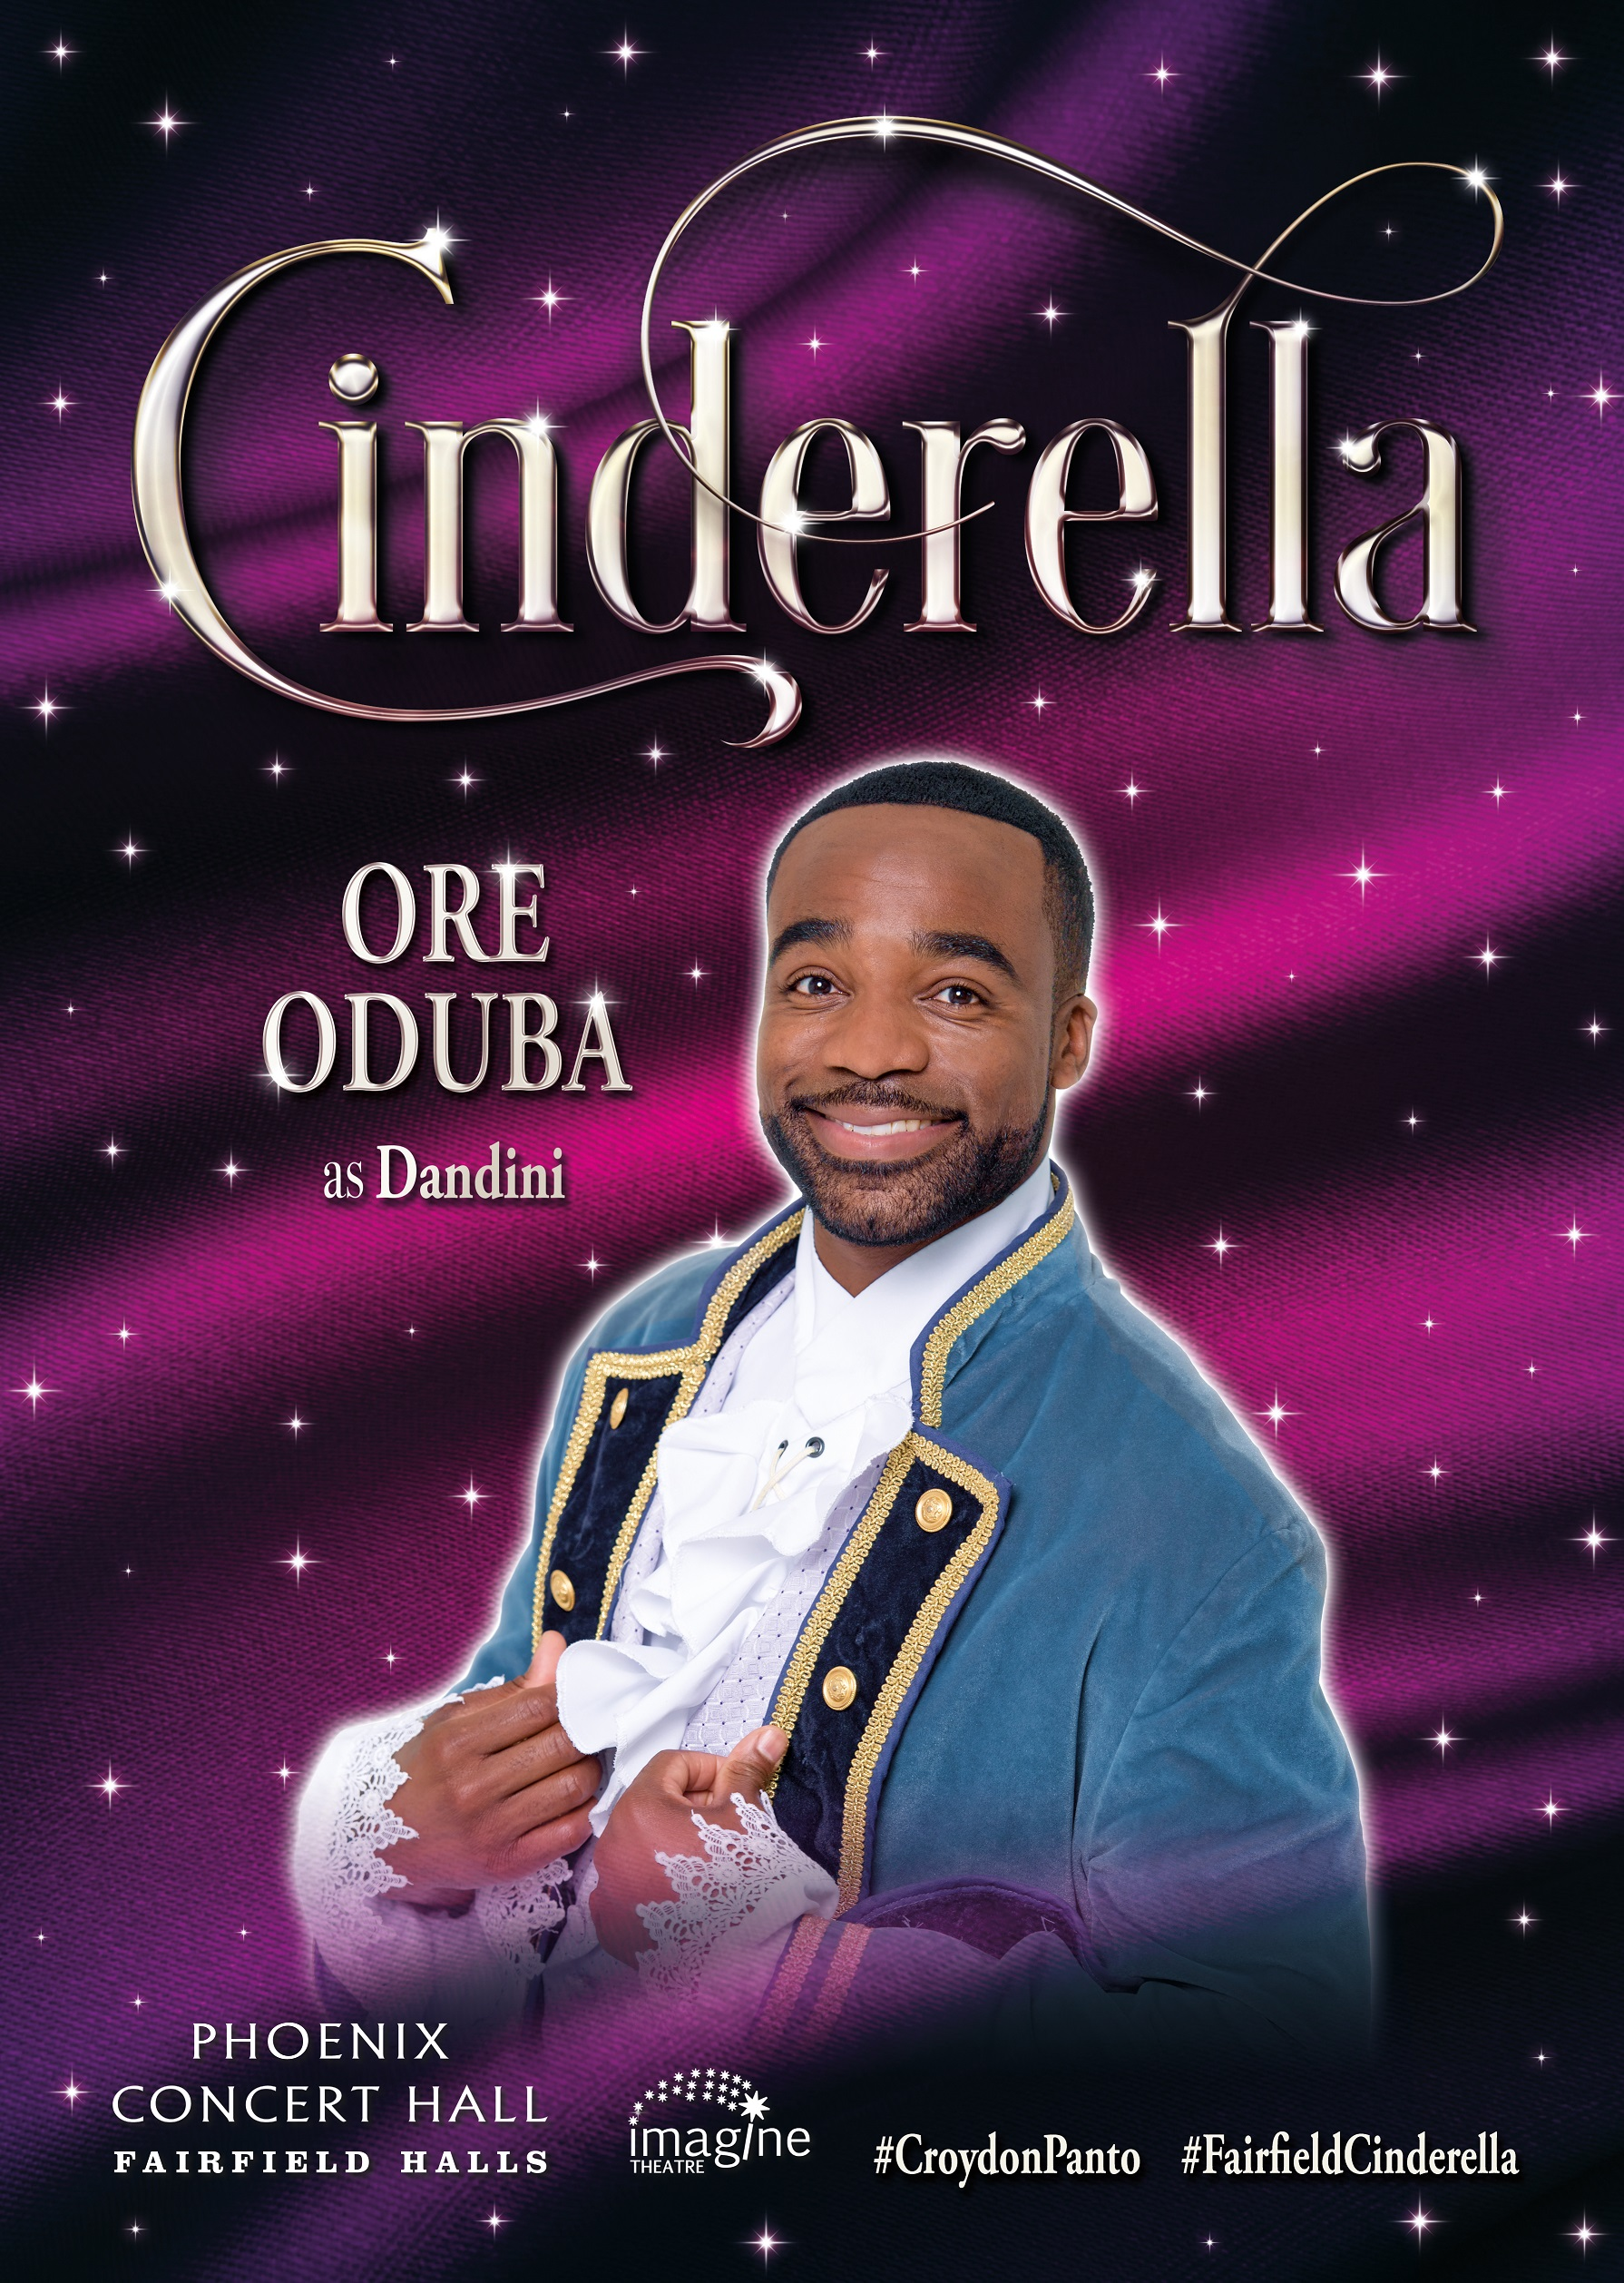 TV Star & Strictly Come Dancing Champion Ore Oduba has his invitation to the Ball in Croydon this Christmas!